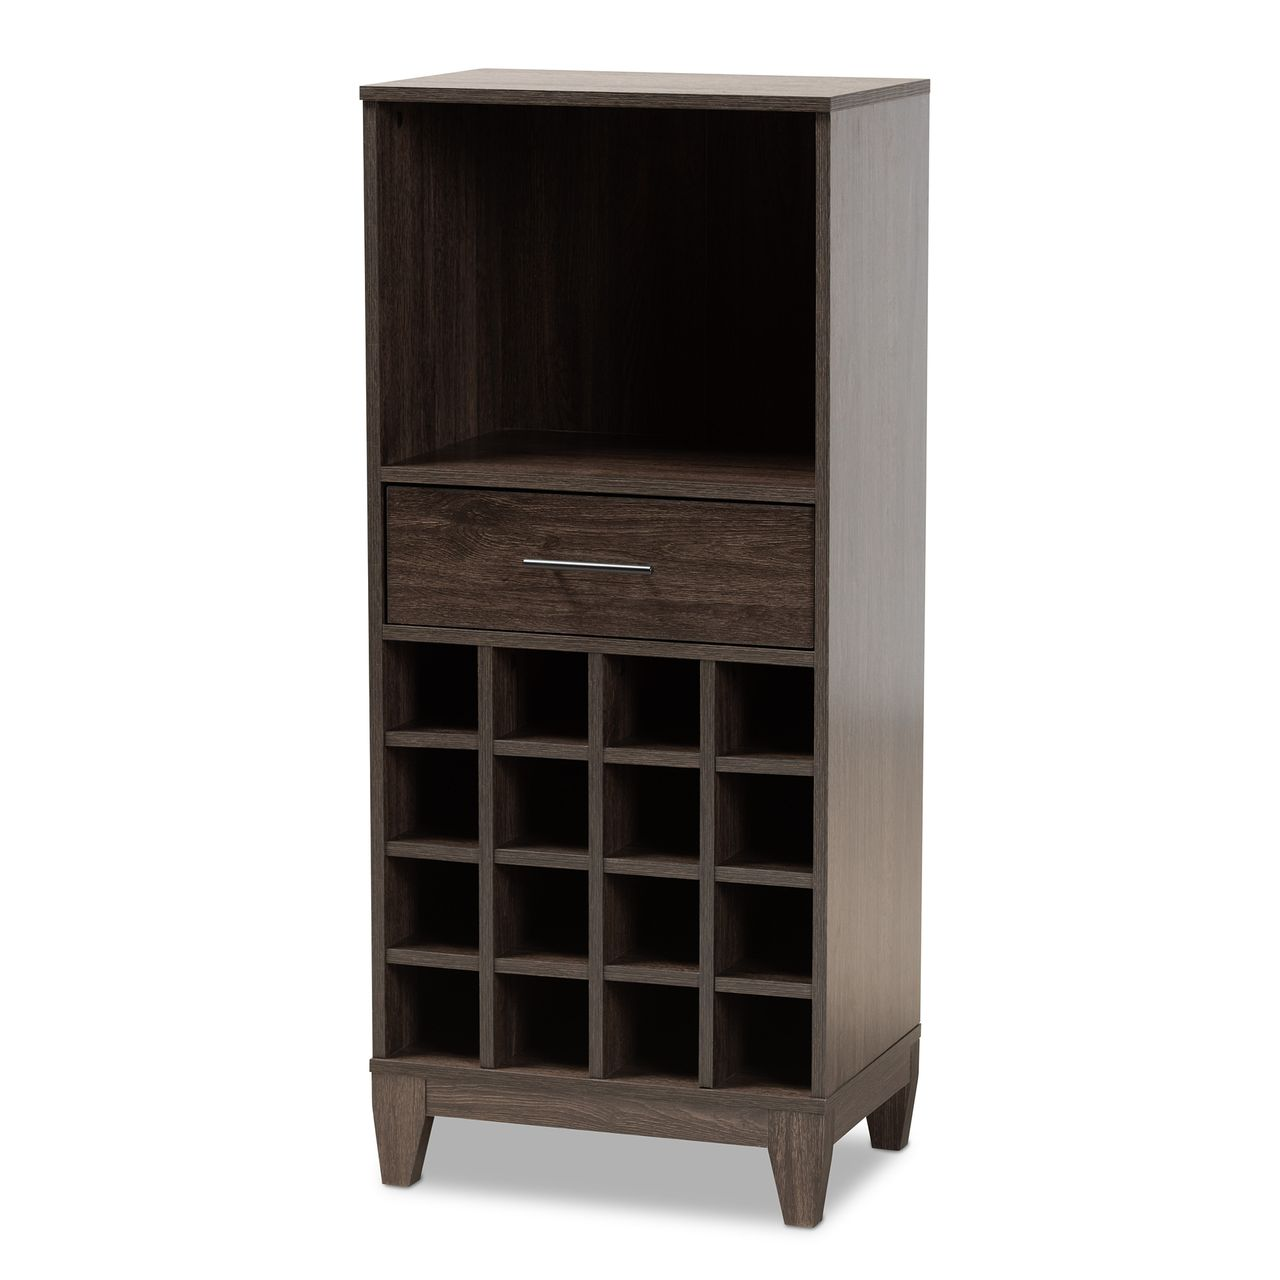 Baxton Studio Trenton Dark Brown 1-Drawer Wine Storage Cabinet